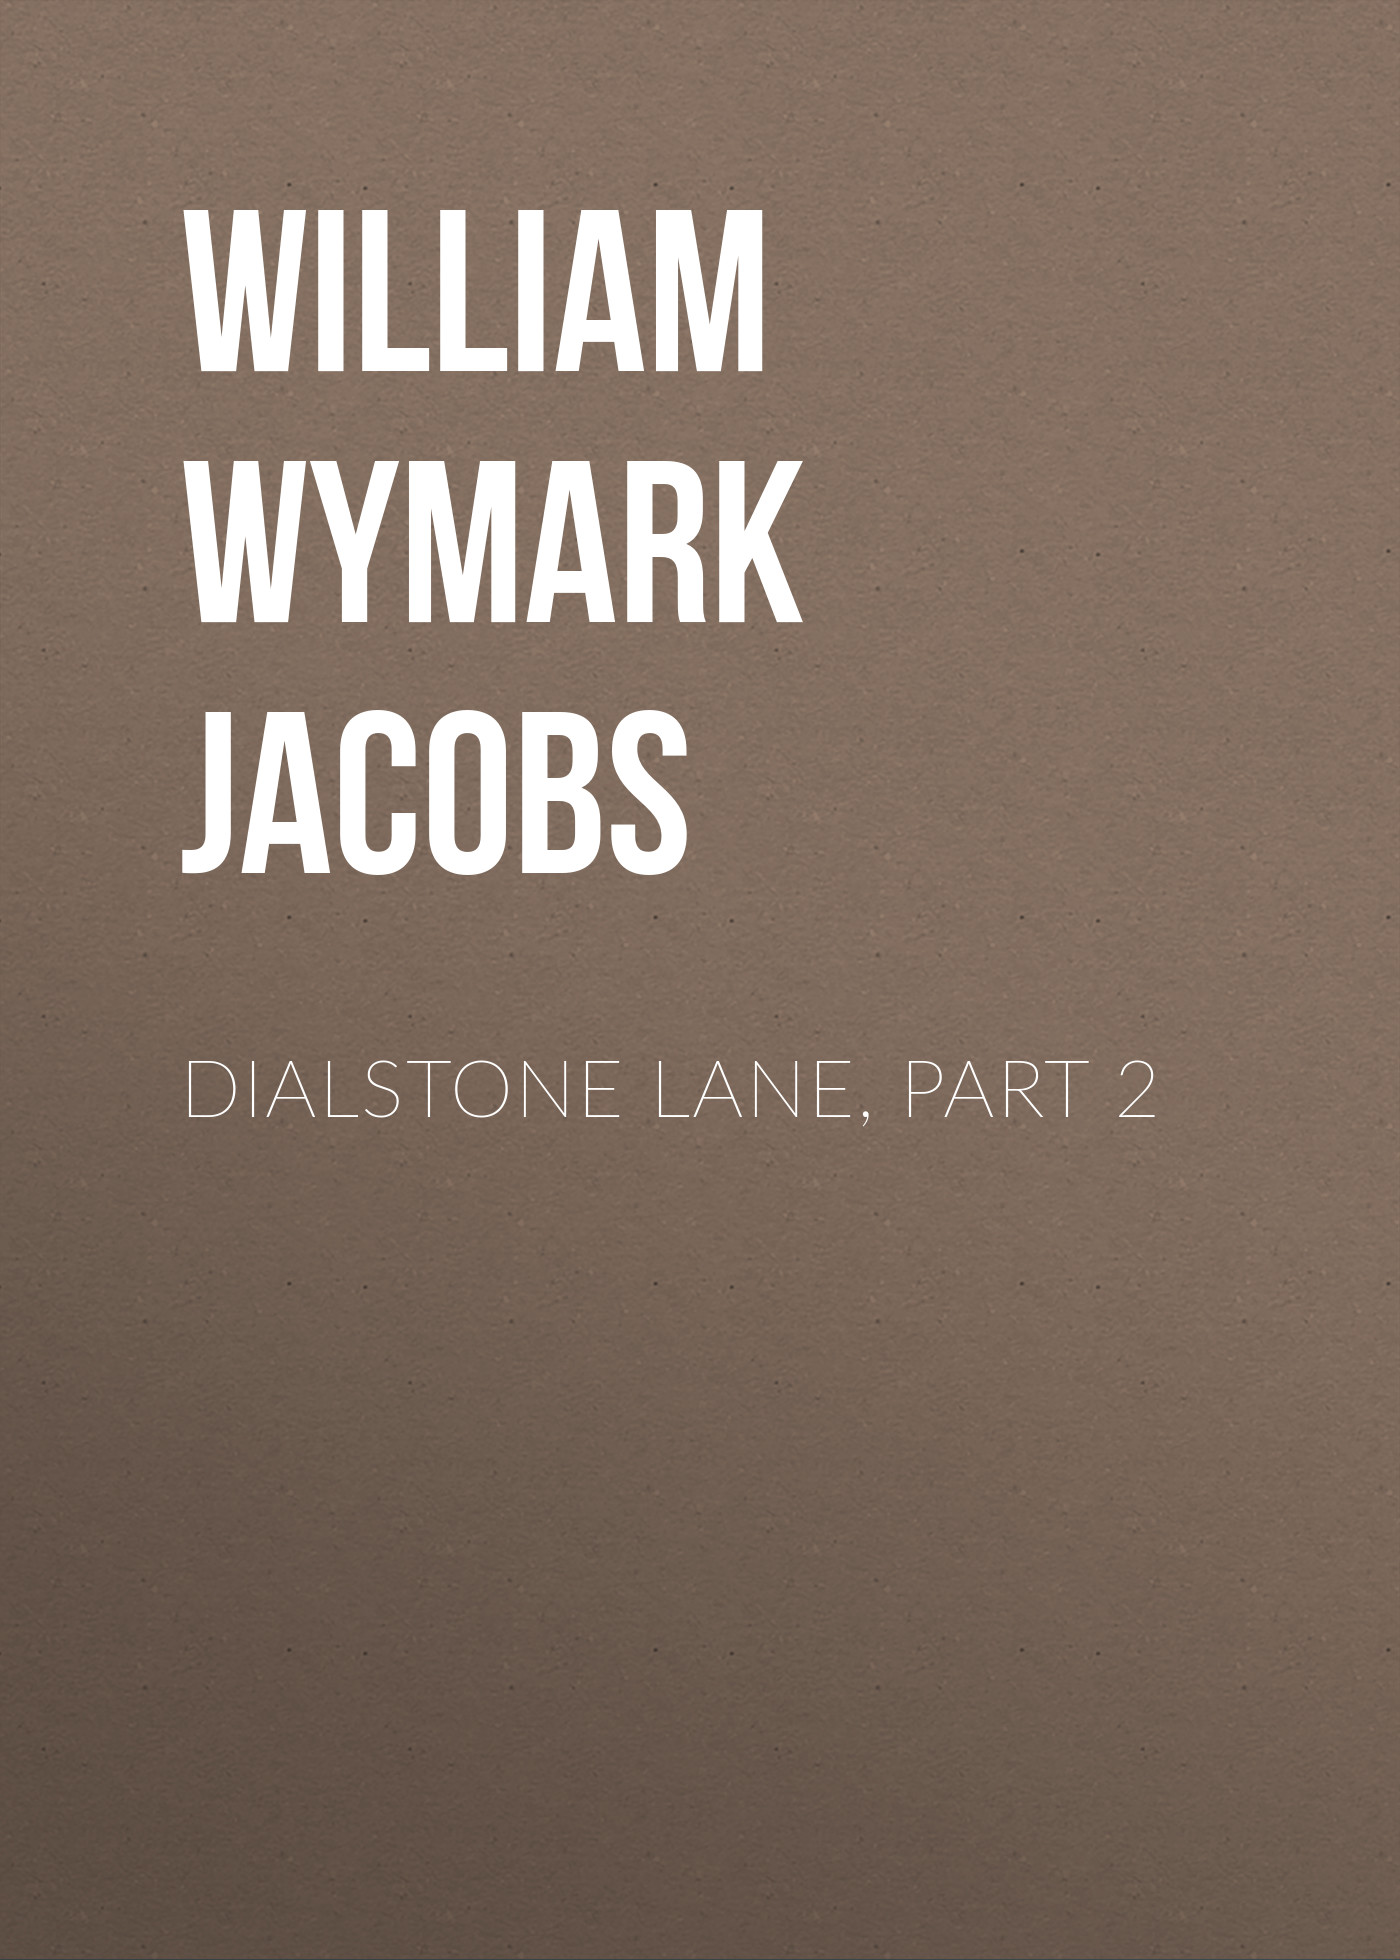 лучшая цена William Wymark Jacobs Dialstone Lane, Part 2